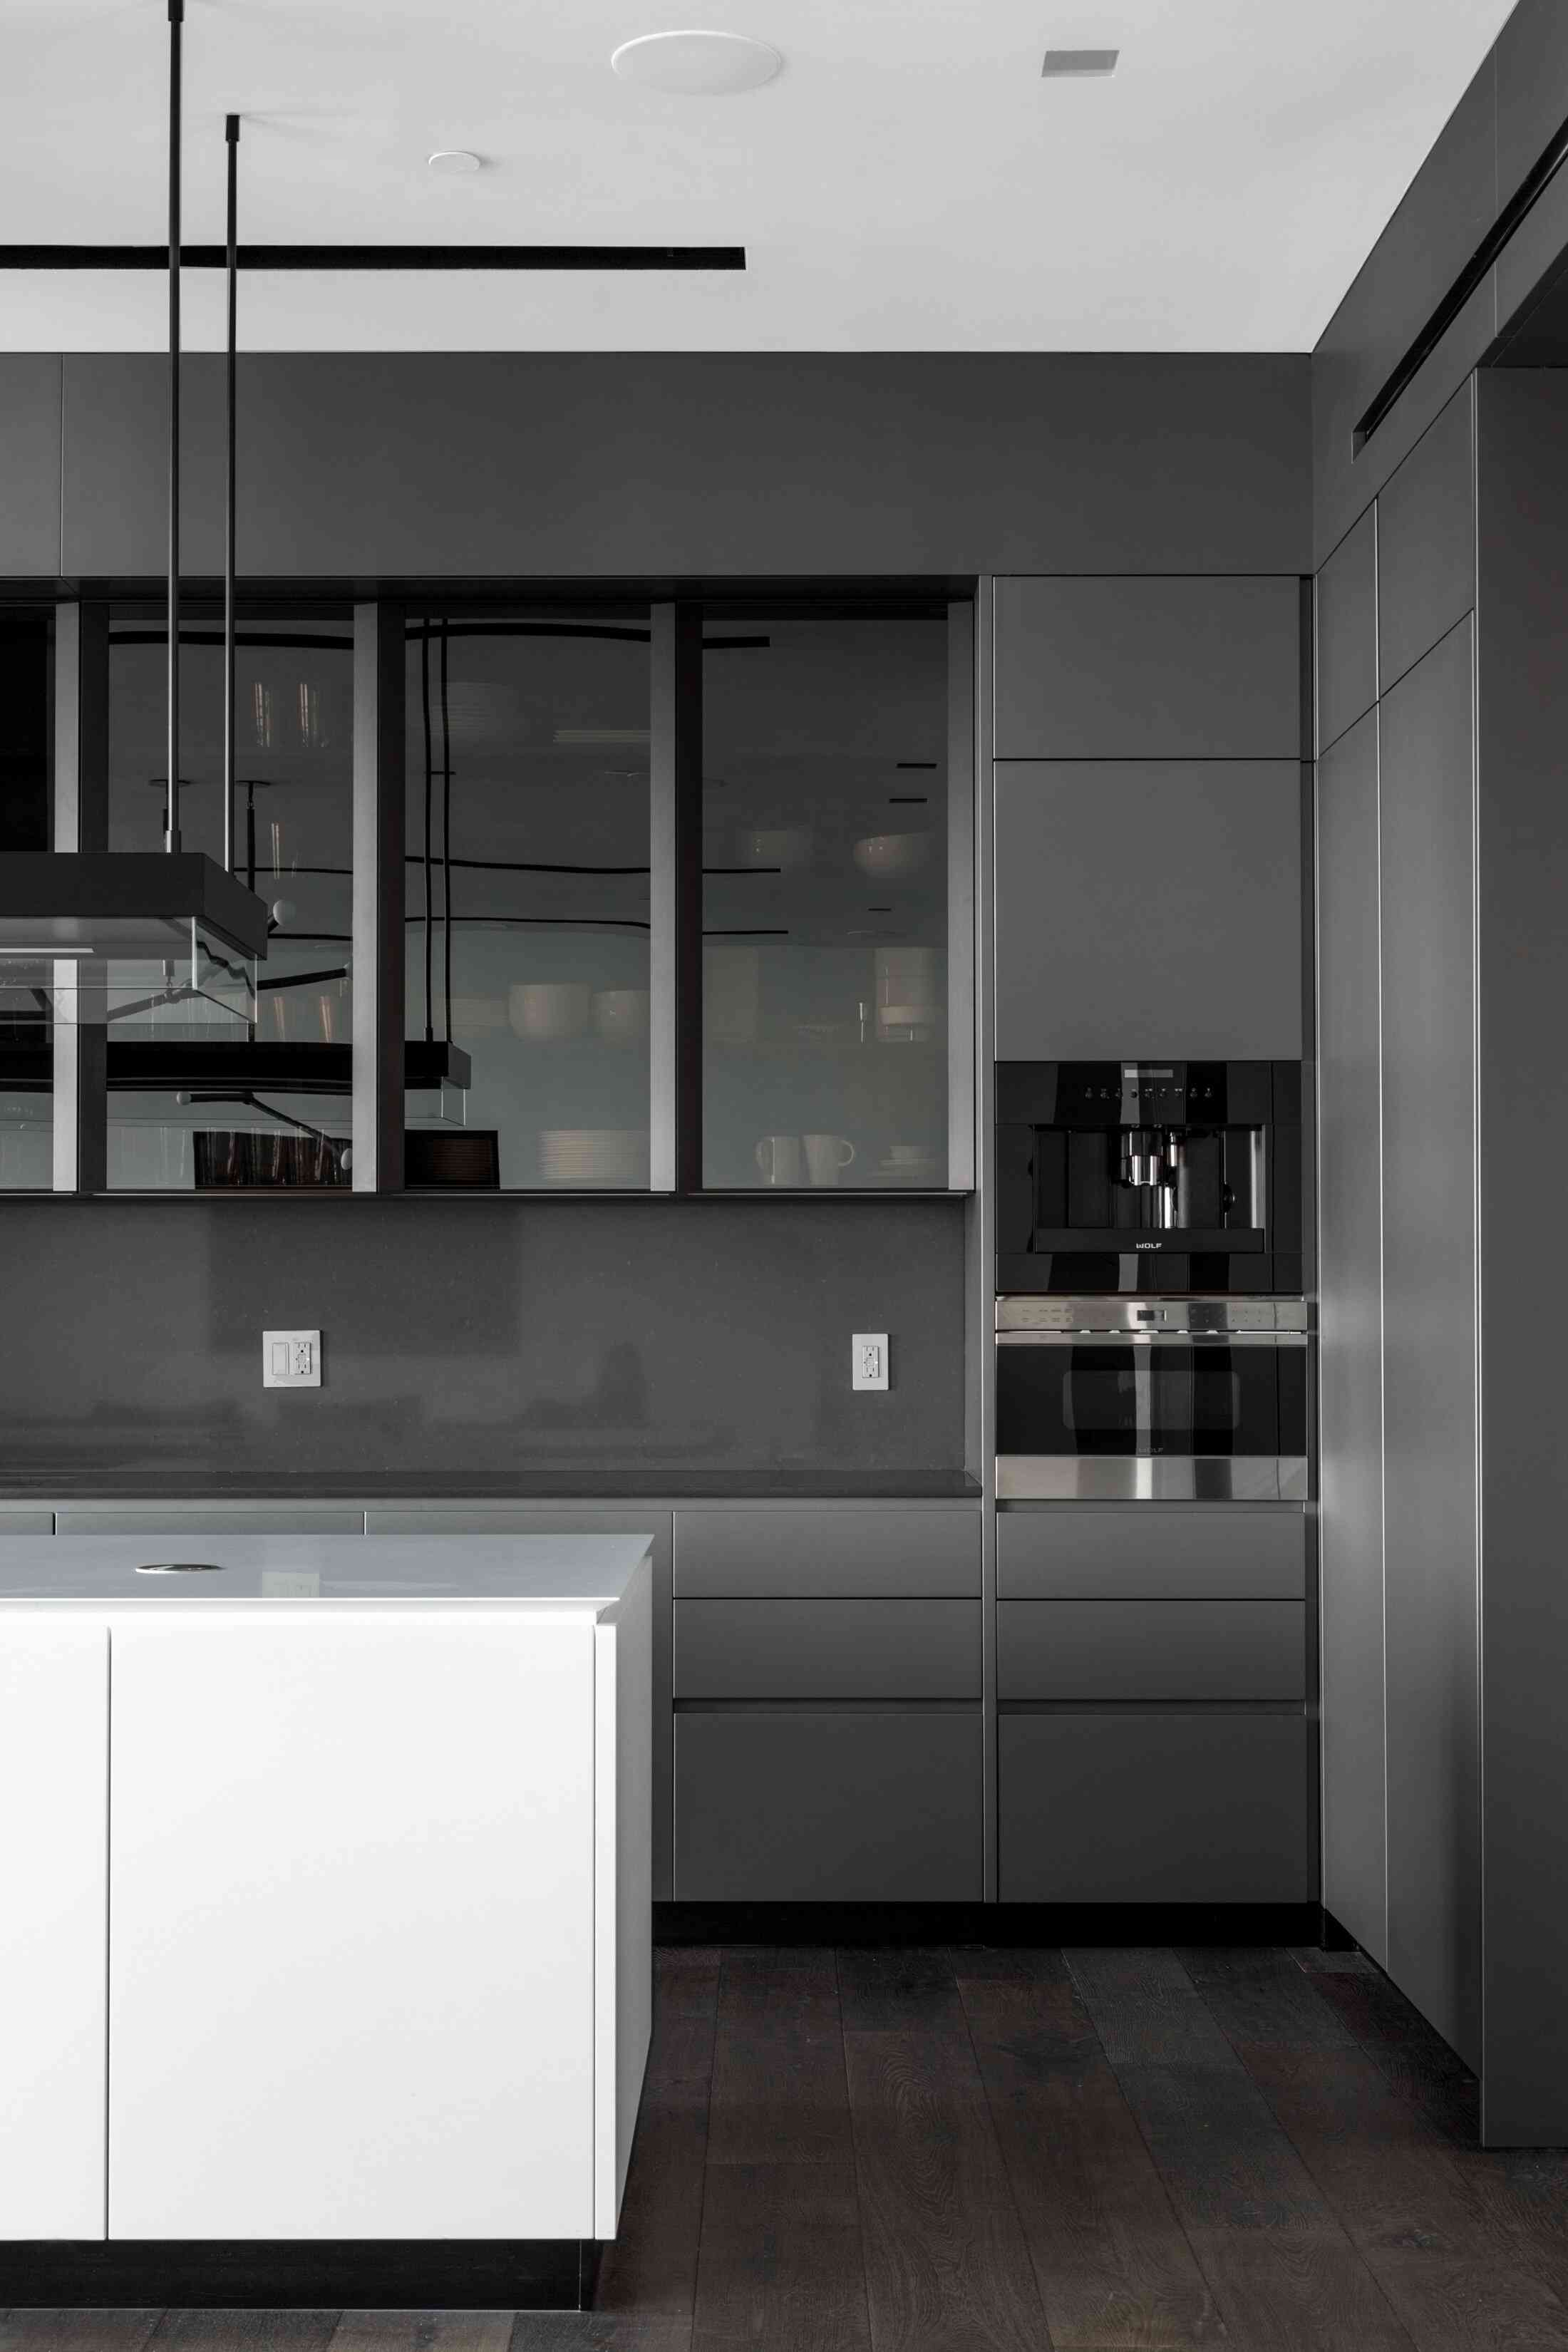 A kitchen with charcoal cabinets and black countertops